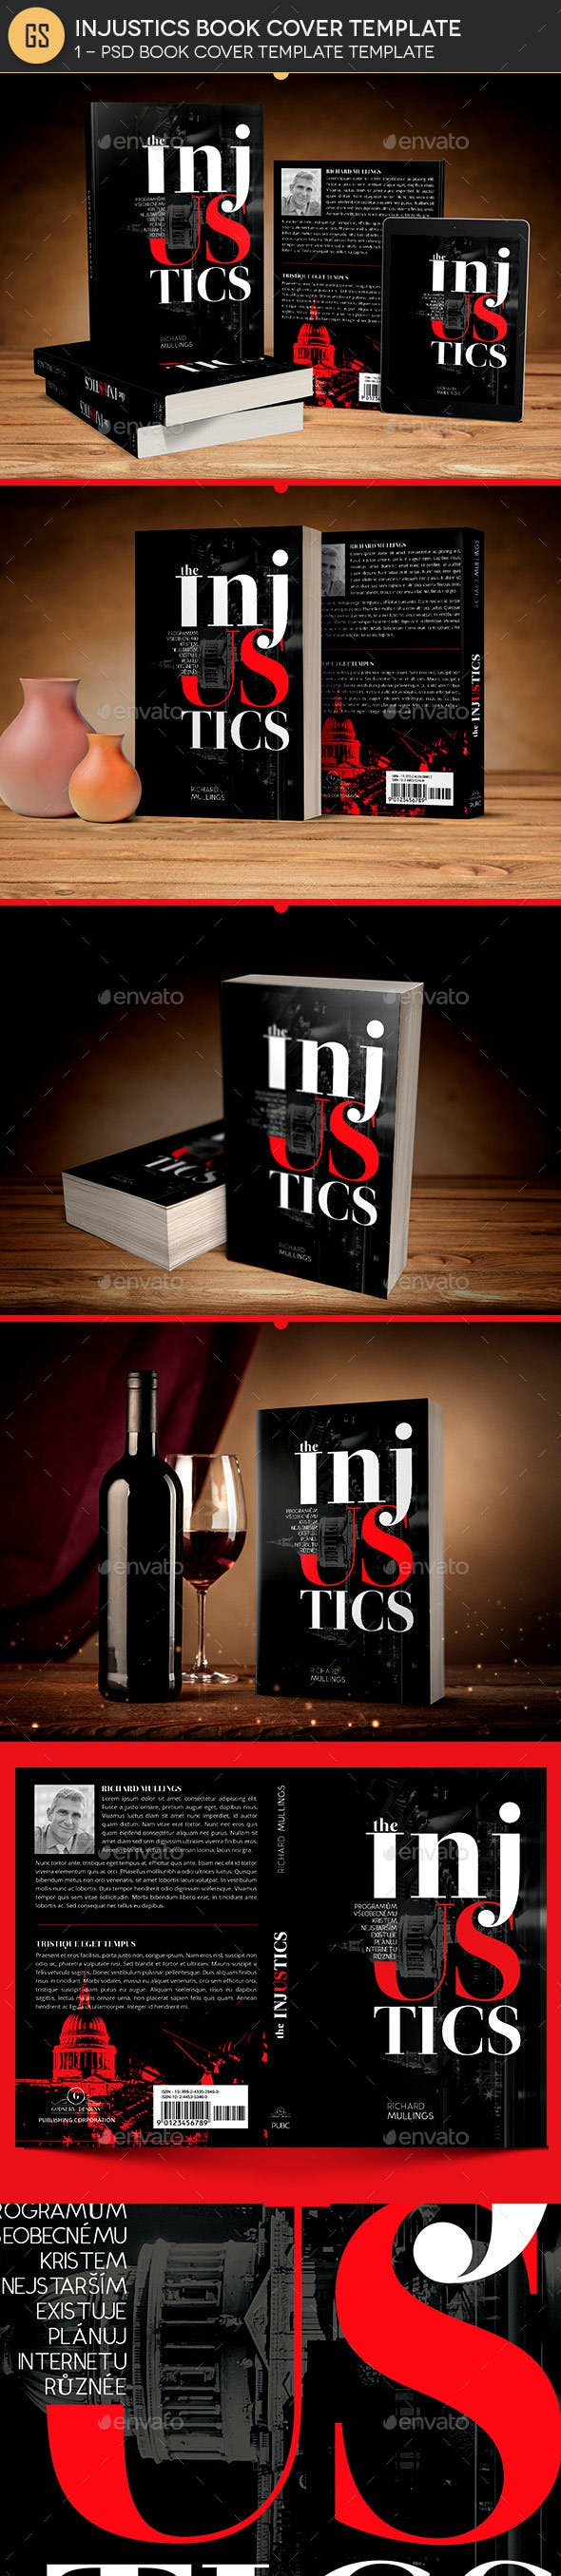 injustics book cover photoshop template by godserv graphicriver